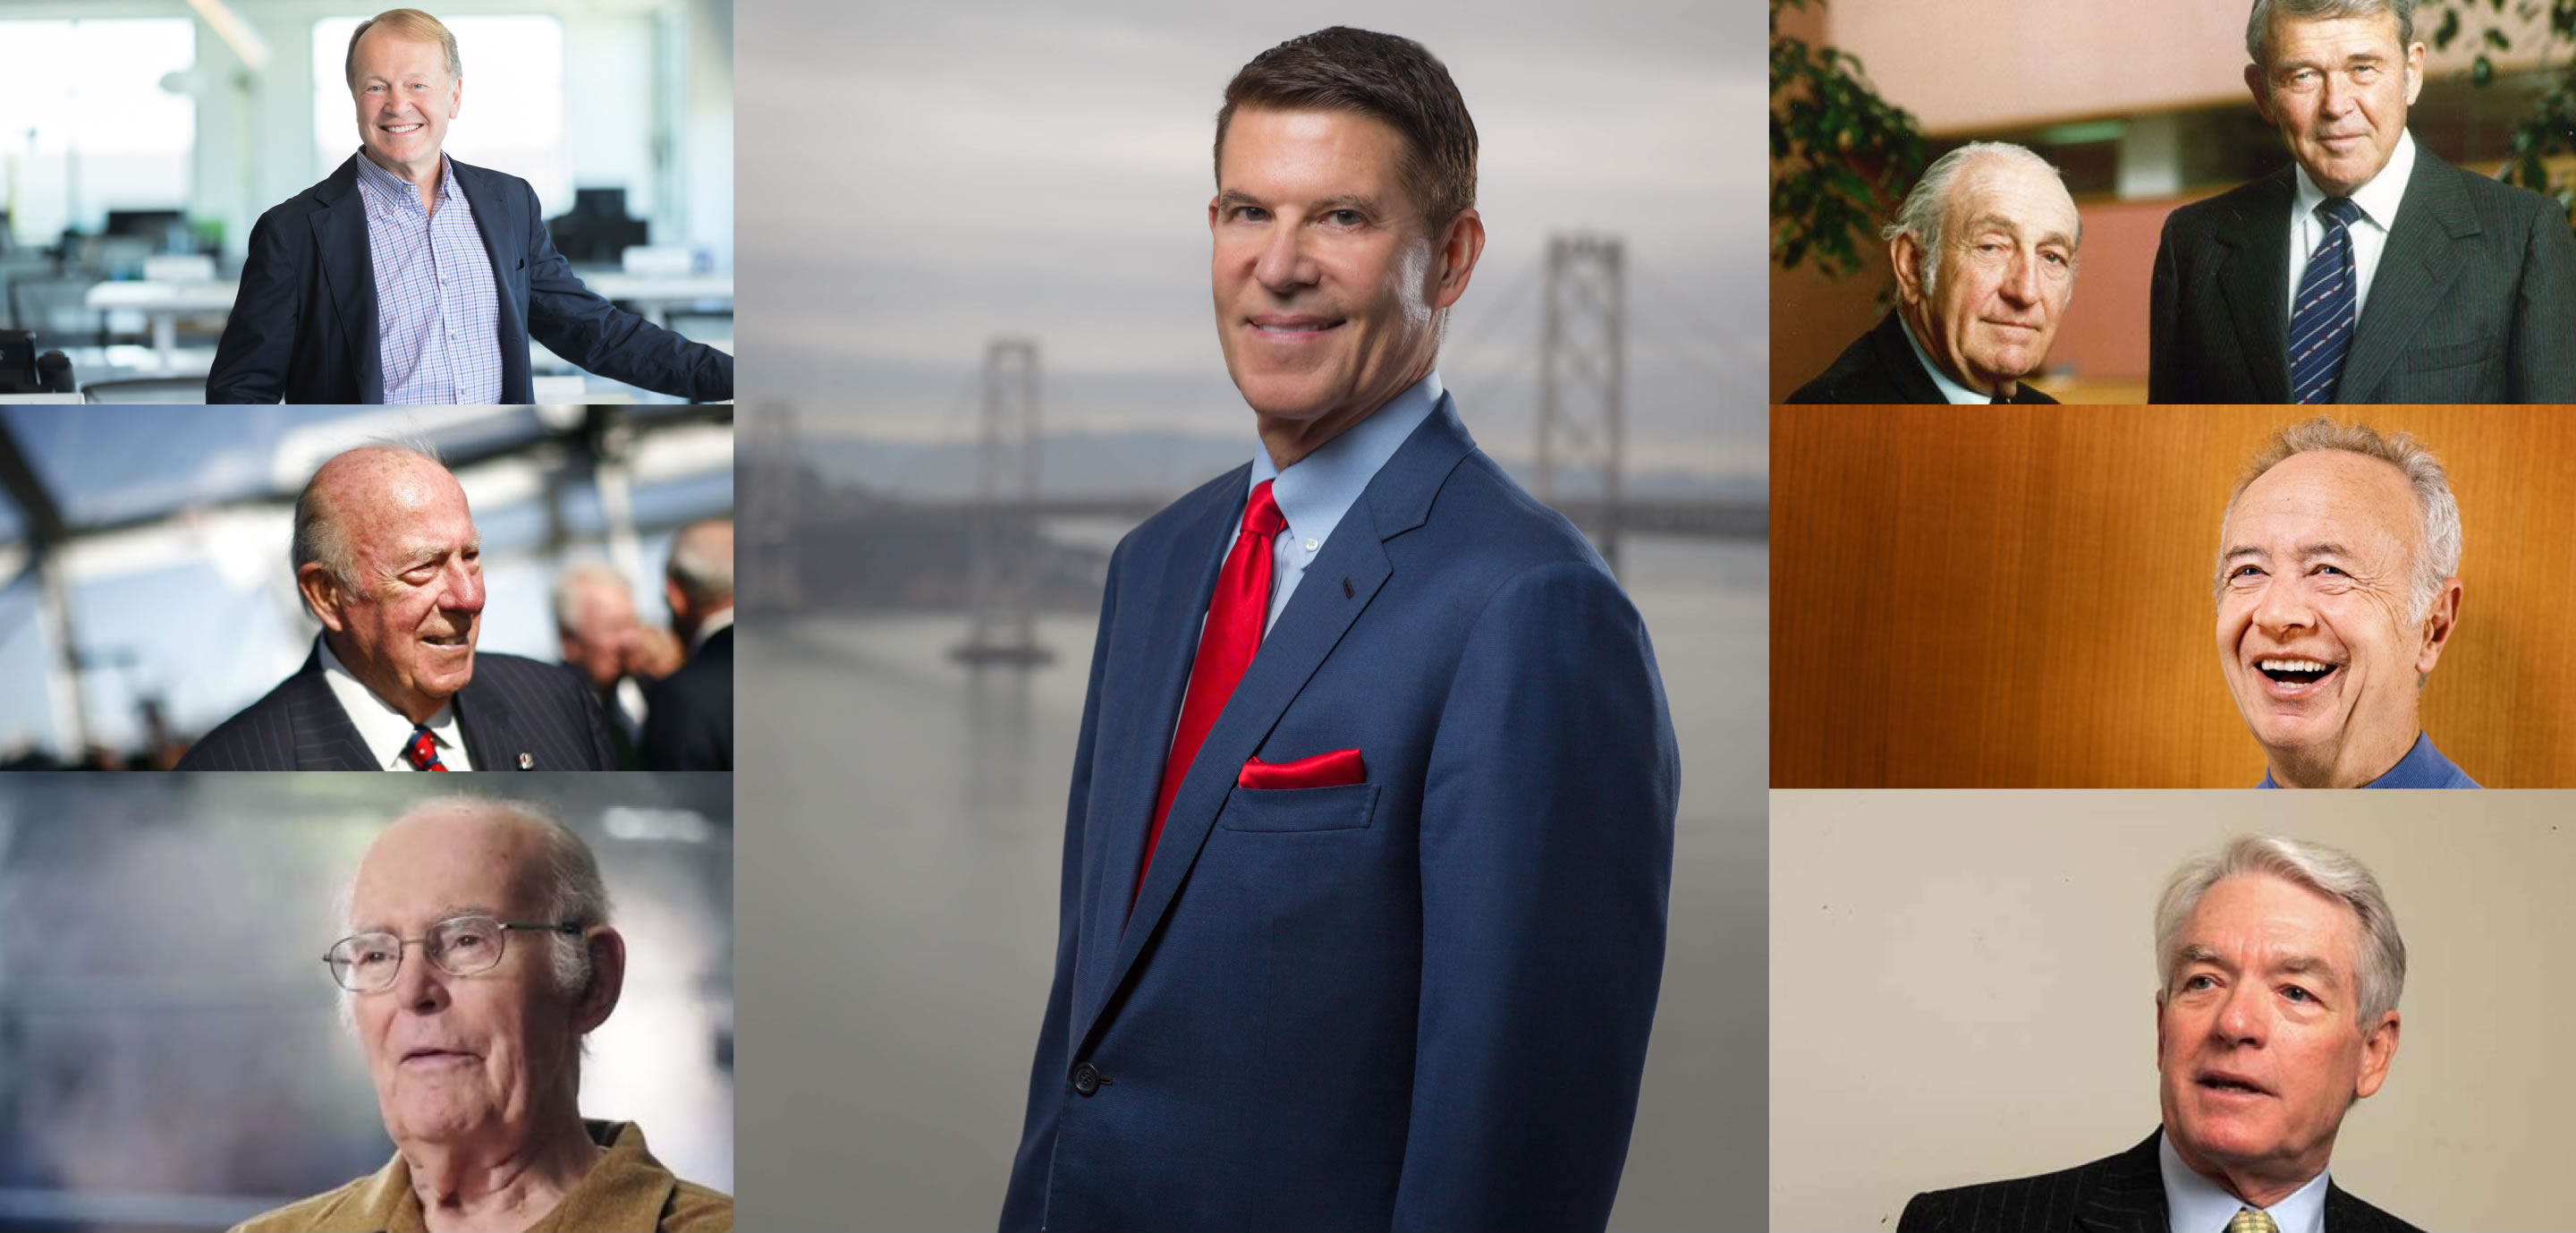 """Previous """"Business Leaders of the Year"""" honored by Harvard Business School Association Northern California; Counterclockwise from top left: John Chambers, George Shultz, Gordon Moore, Chuck Schwab, Andy Grove, Dave Packard & Bill Hewlett. Middle: """"2018 Business Leader of the Year"""" Keith Krach"""